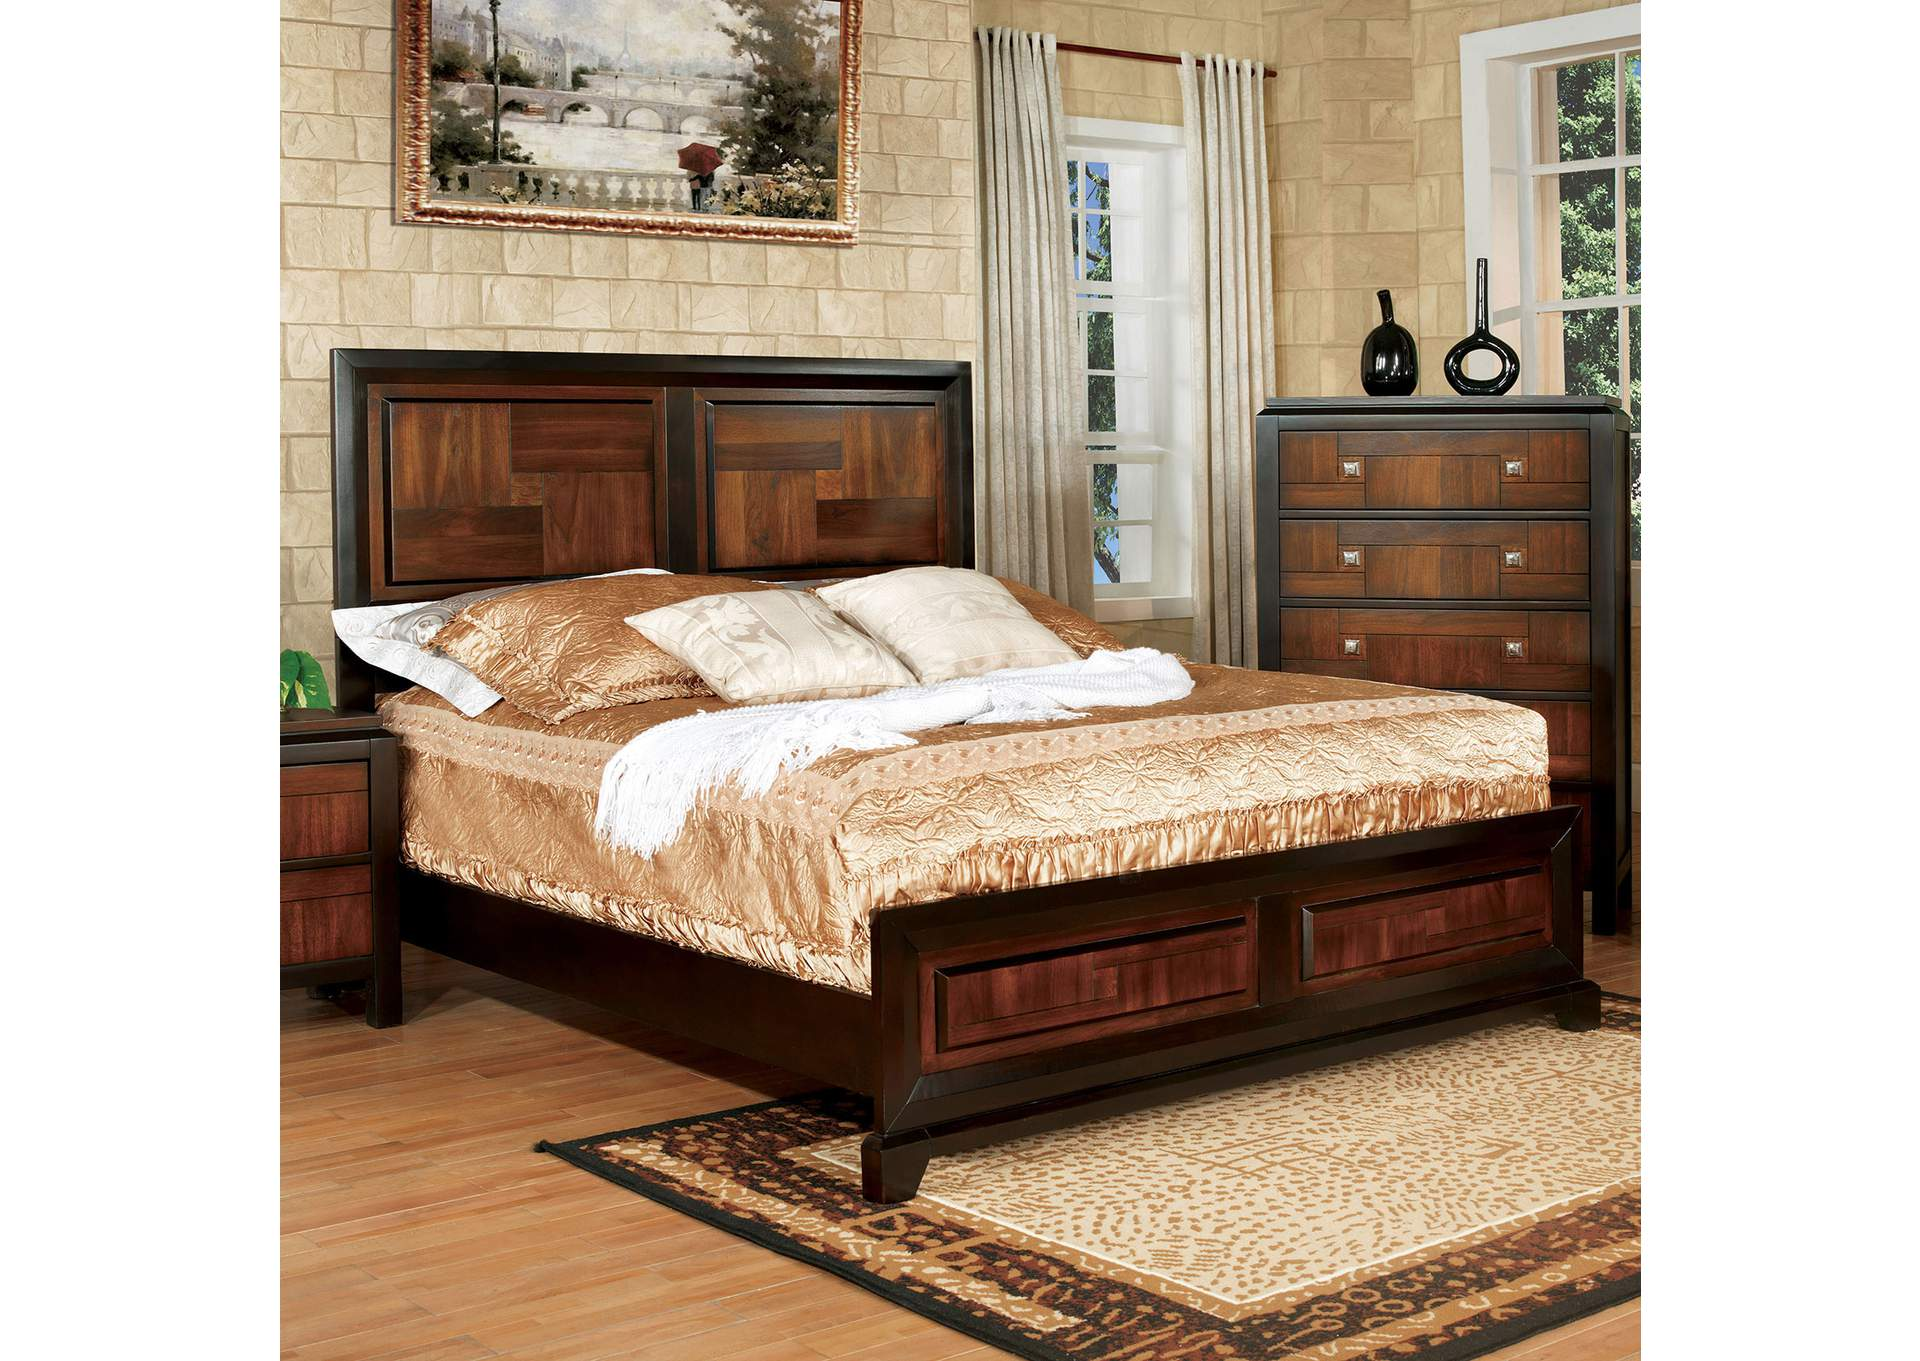 Patra Acacia & Walnut Queen Panel Bed,Furniture of America